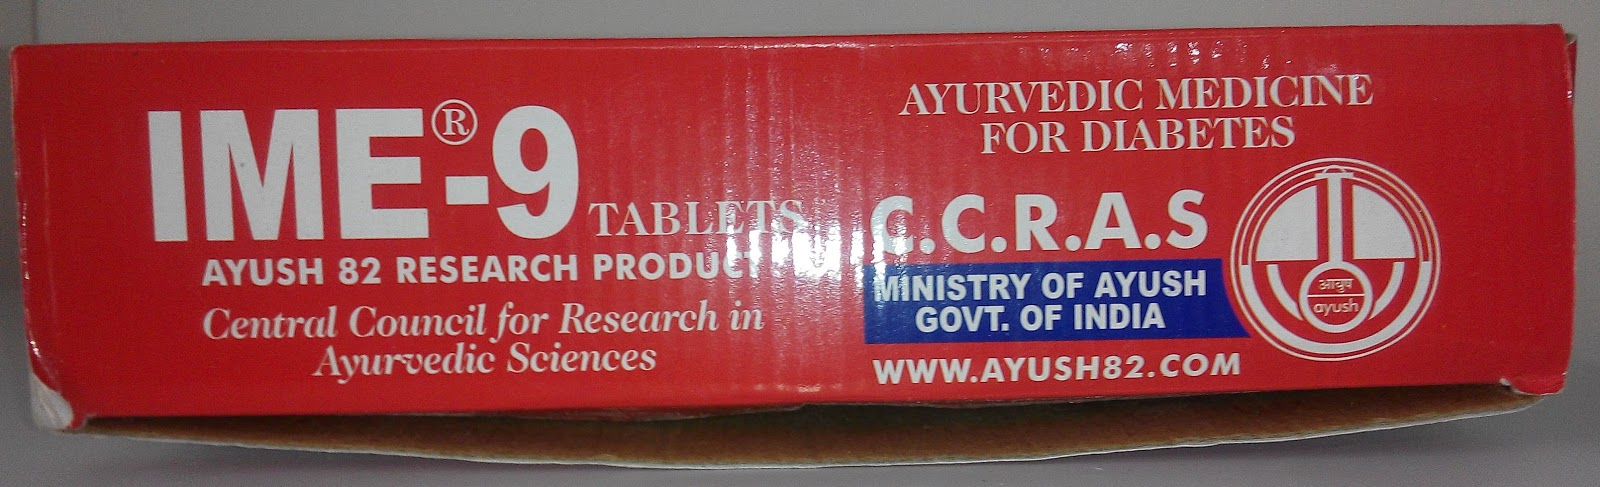 Review] IME9 Ayurvedic Medicine Is a Fraud Medicine by Kudos - OxyMos